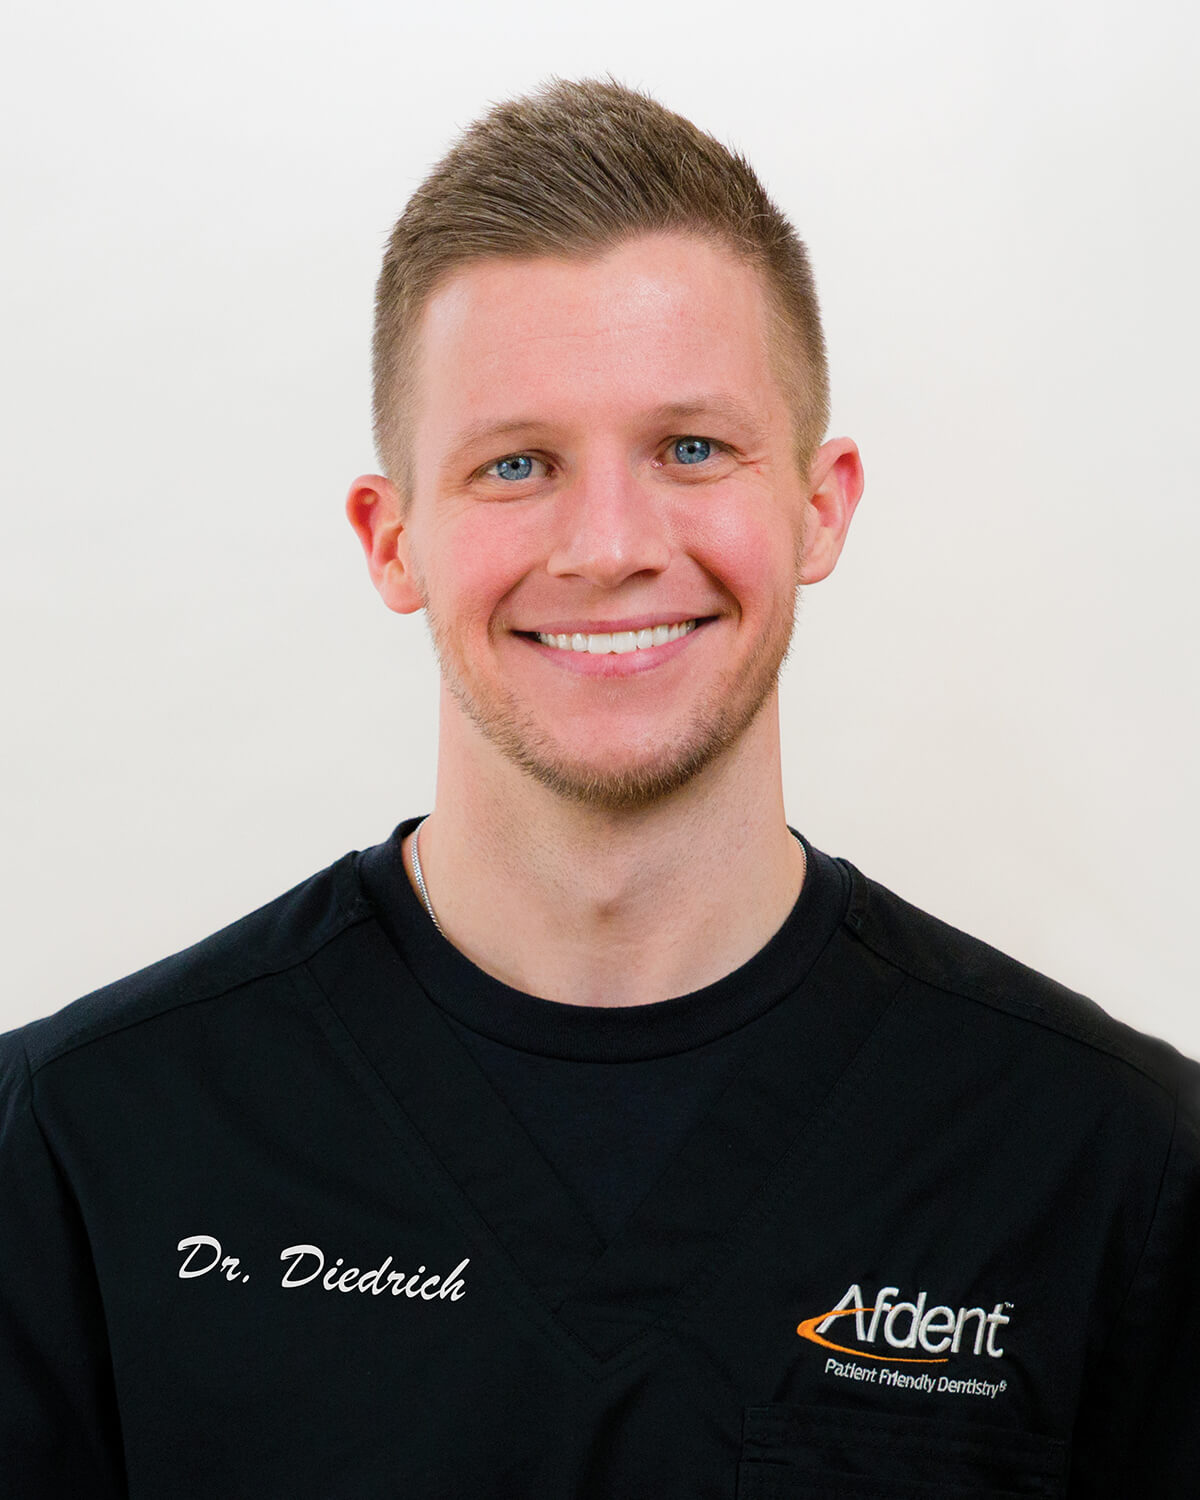 Dr. Gregory Diedrich, DMD | Dental Care in Mishawaka, IN